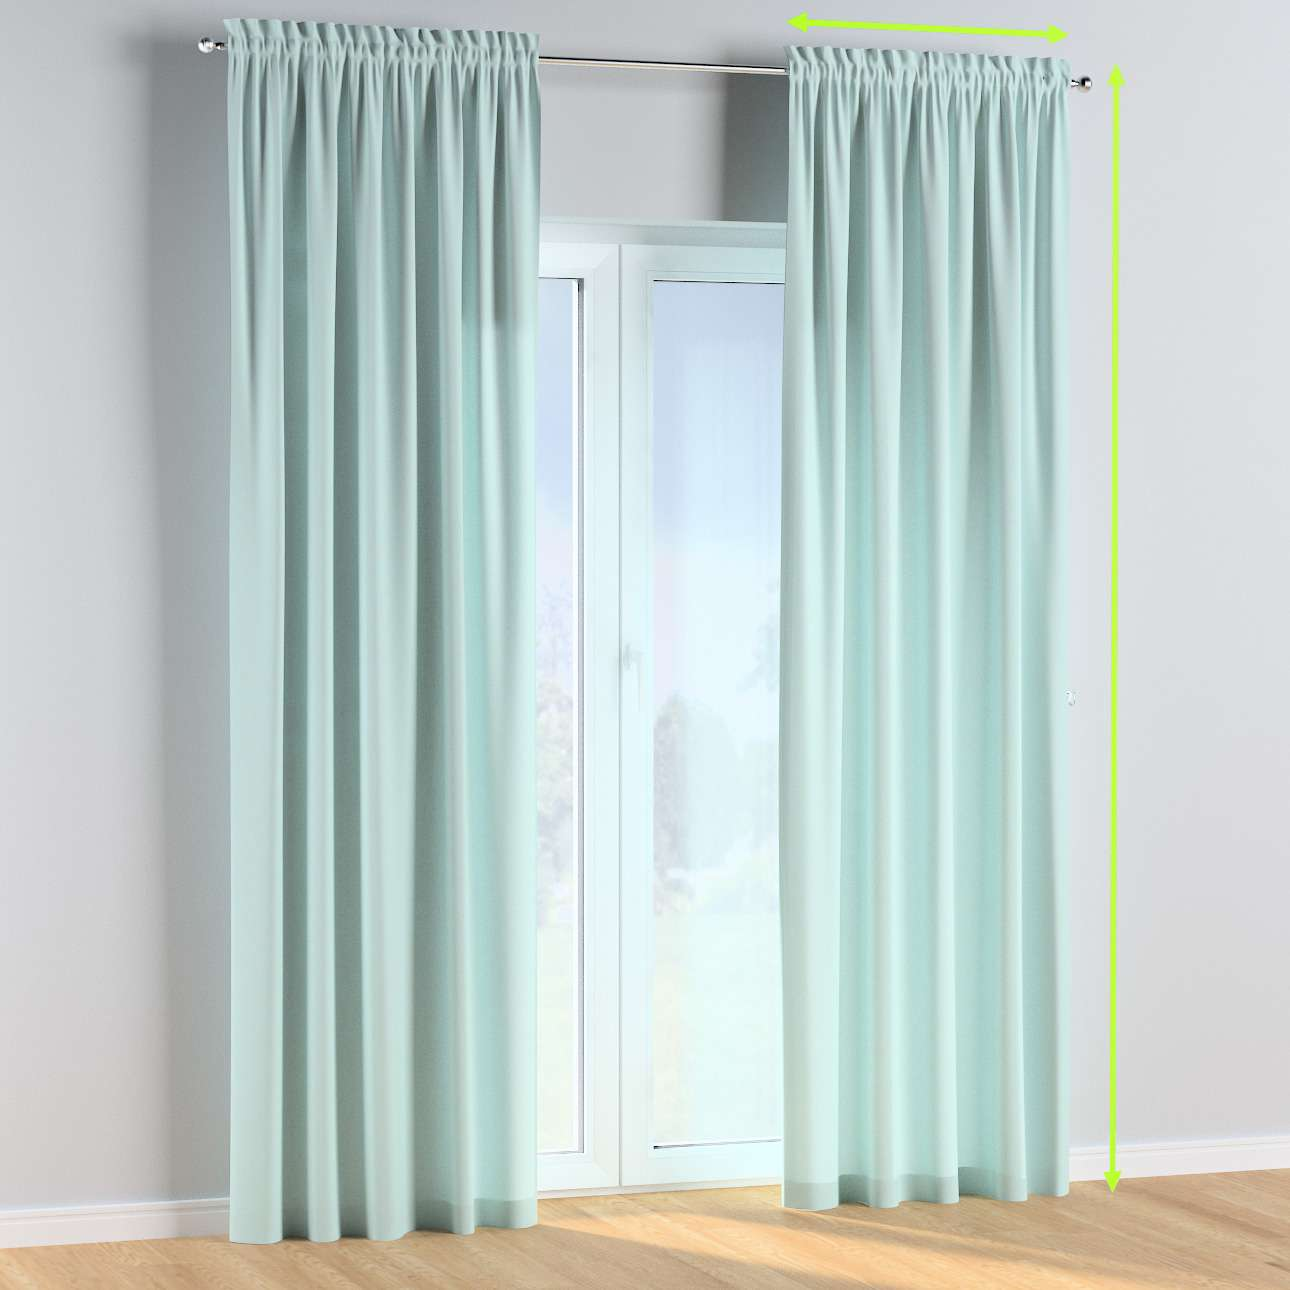 Slot and frill curtains in collection Cotton Story, fabric: 702-10